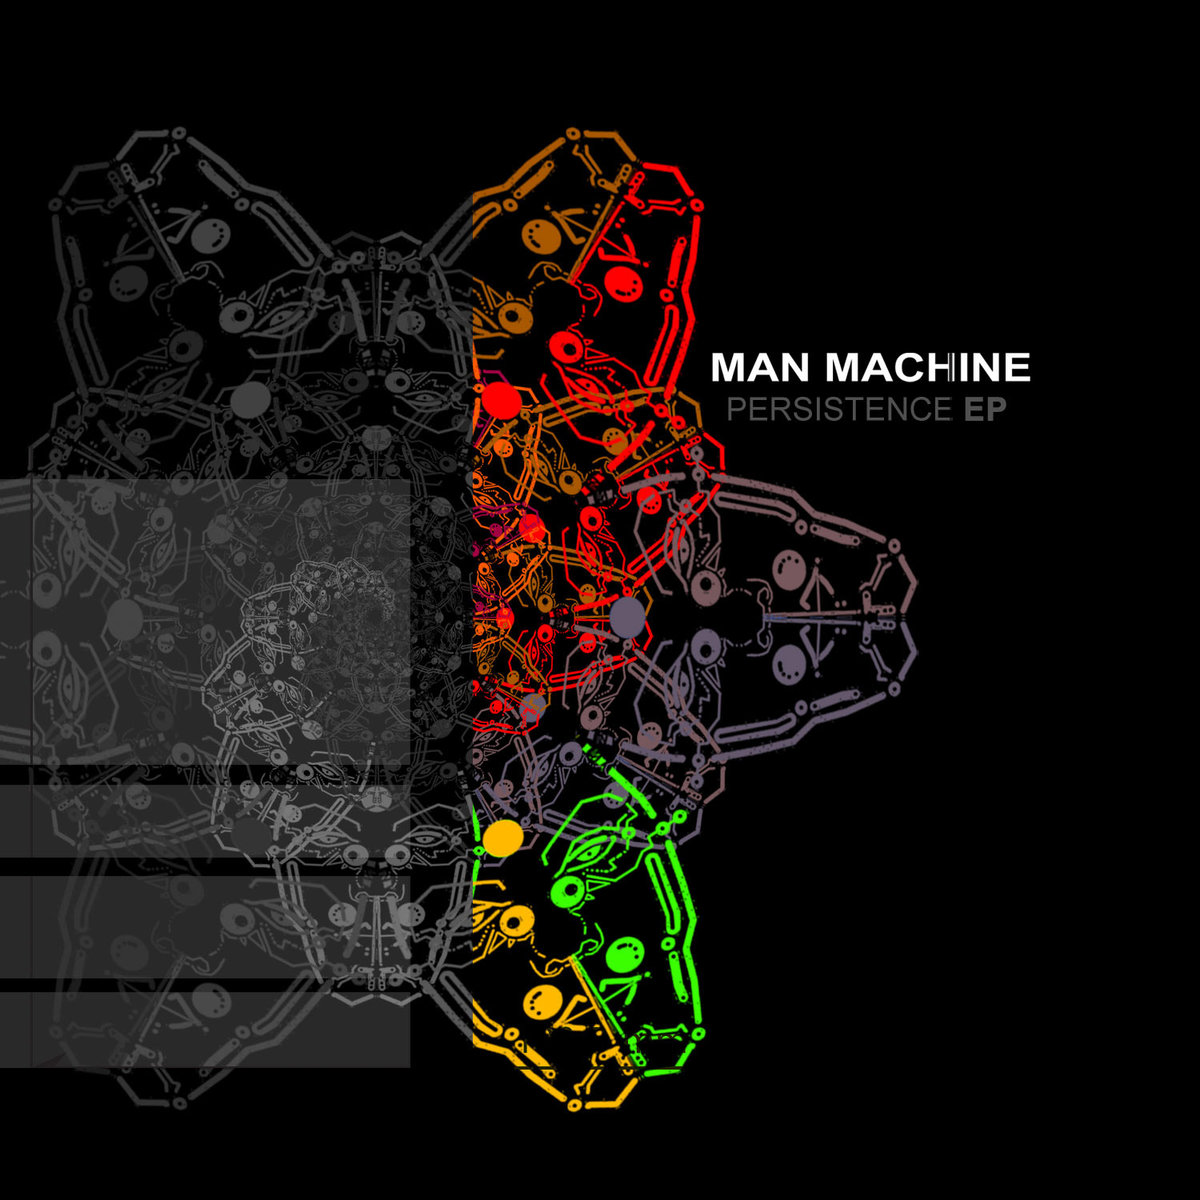 Man Machine - Persistence